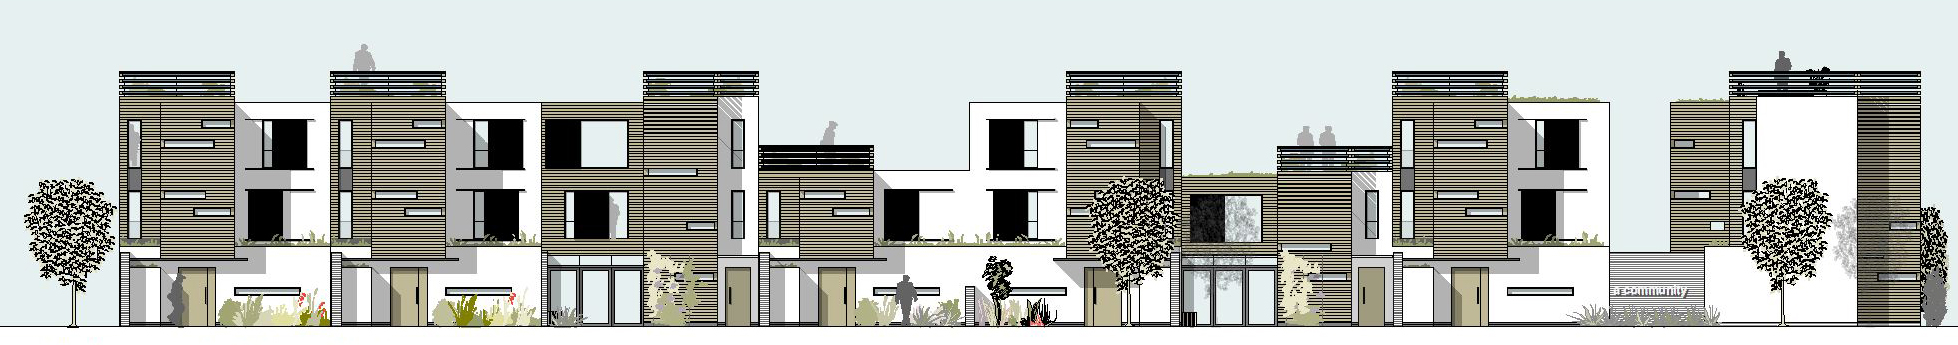 balham street elevation